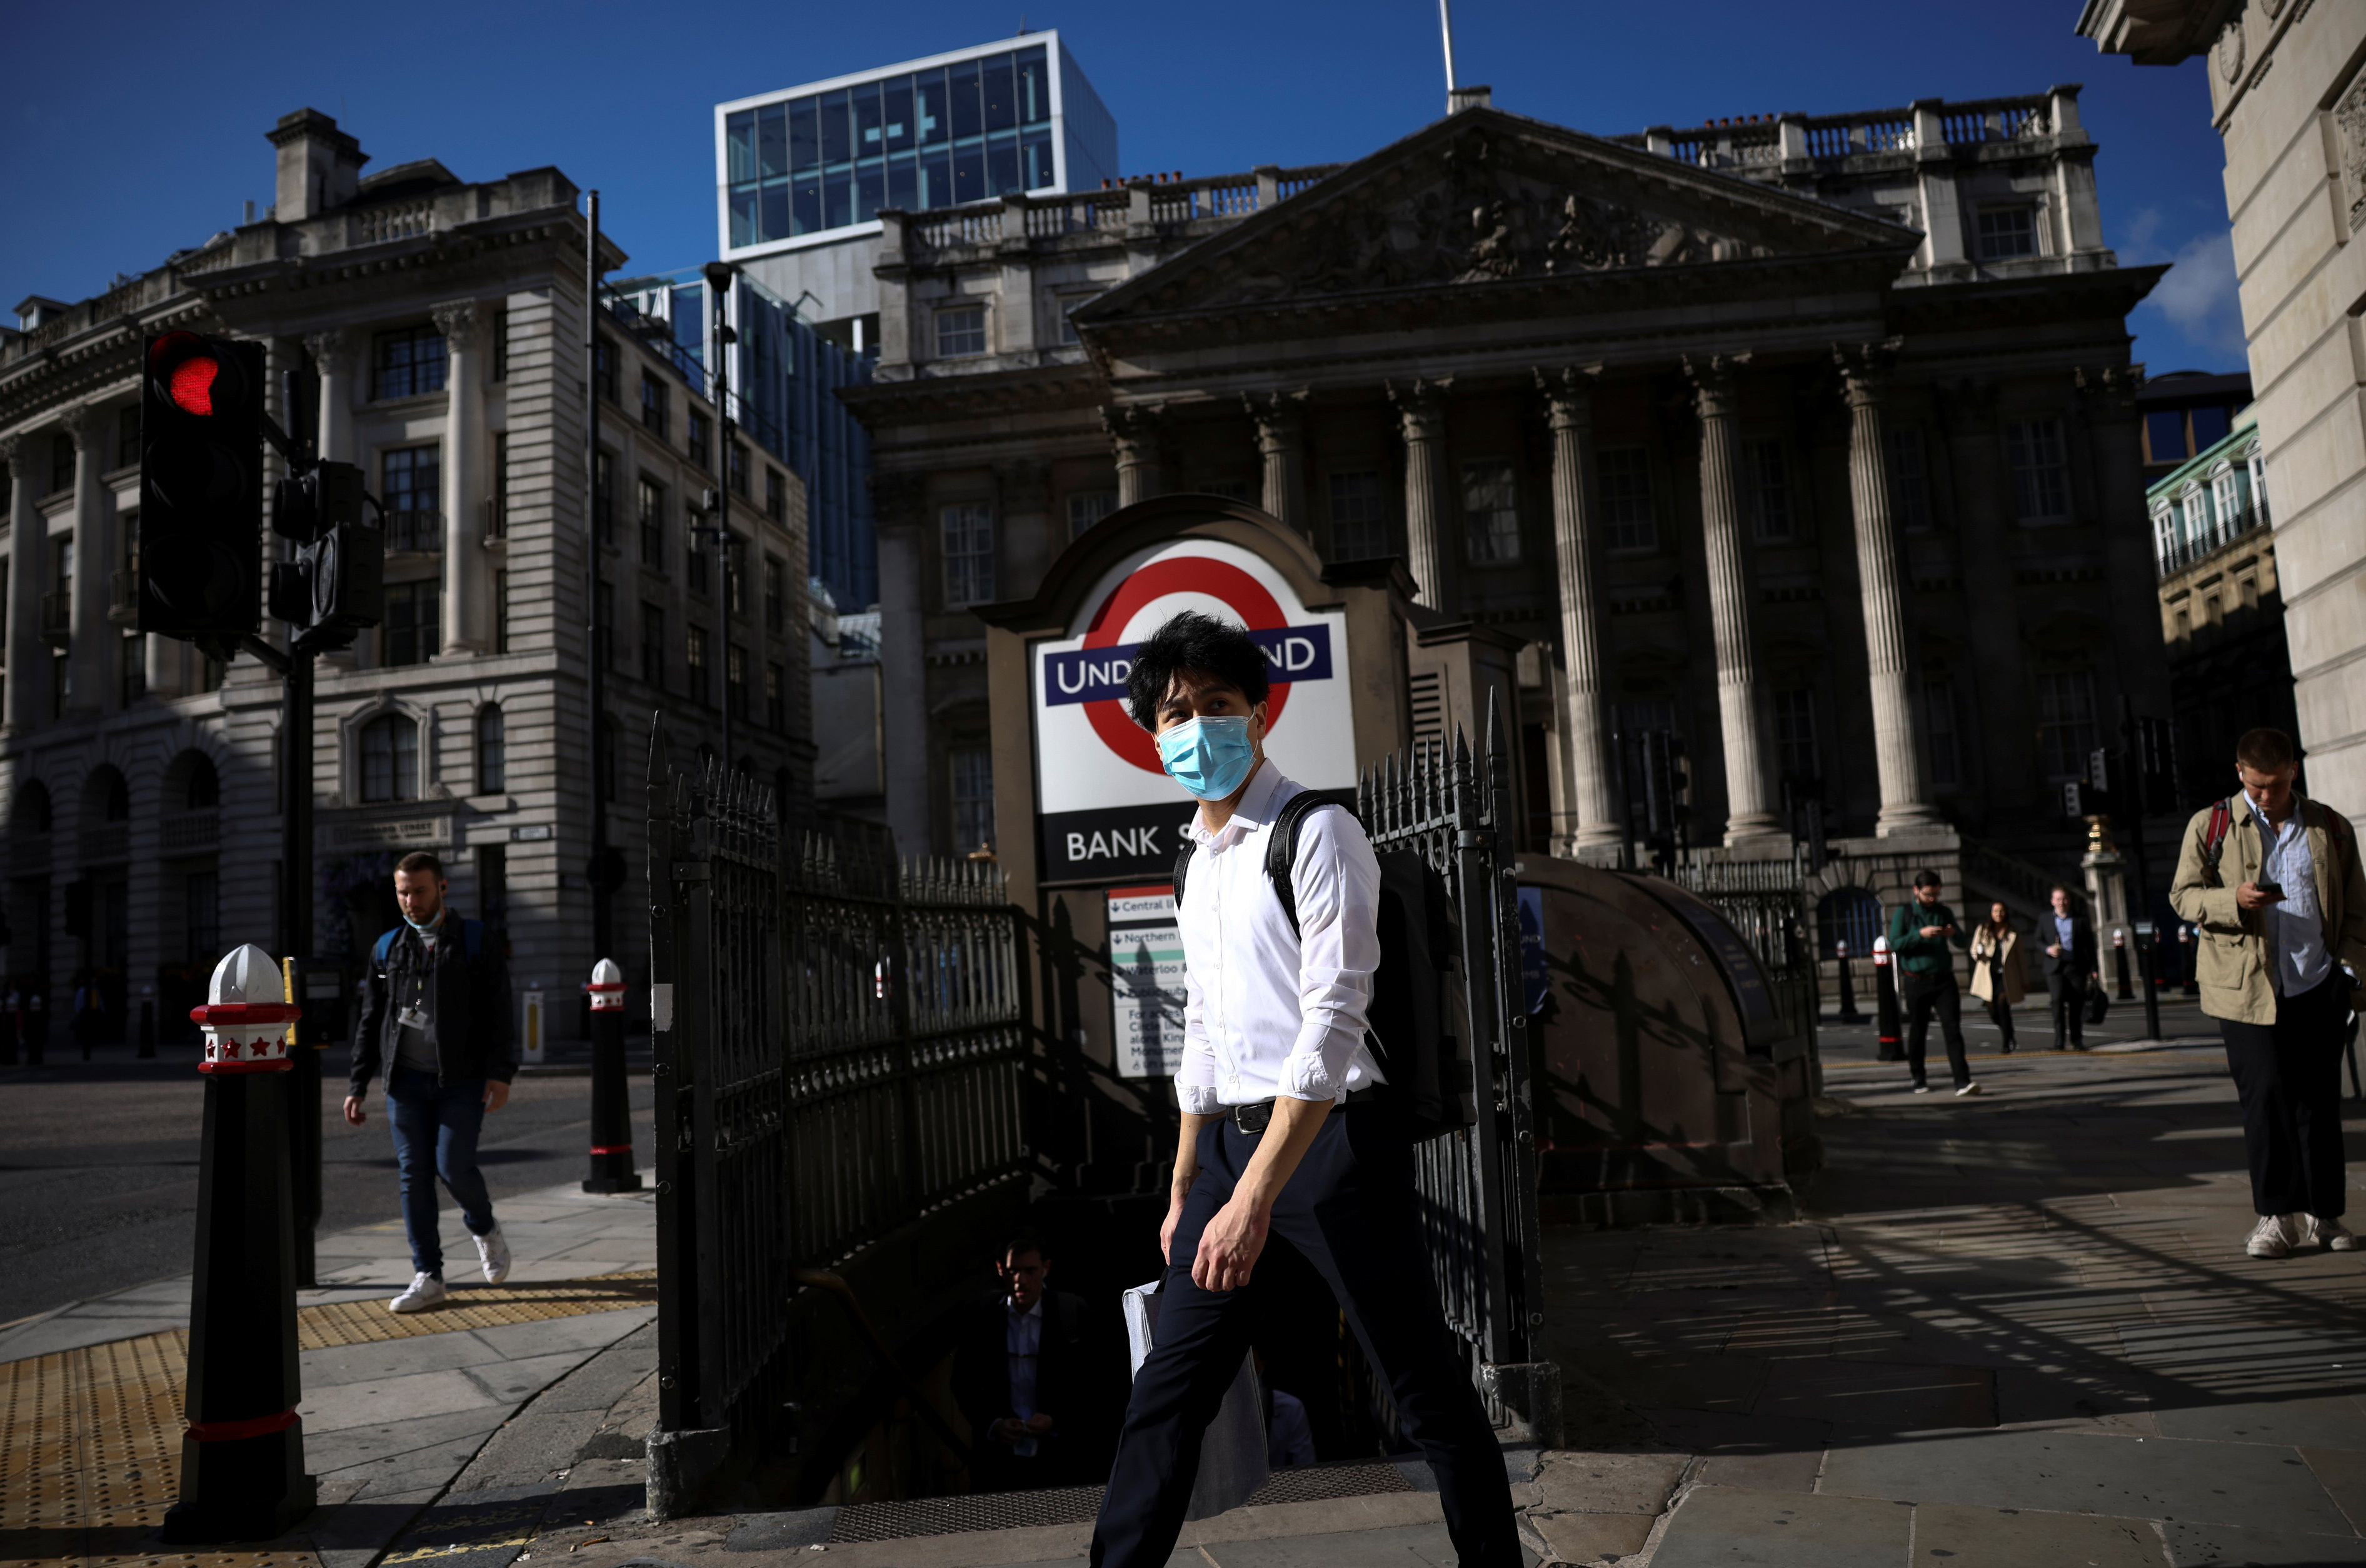 A person walks past Bank underground station during morning rush hour, amid the coronavirus disease (COVID-19) pandemic in London, Britain, July 29, 2021. REUTERS/Henry Nicholls